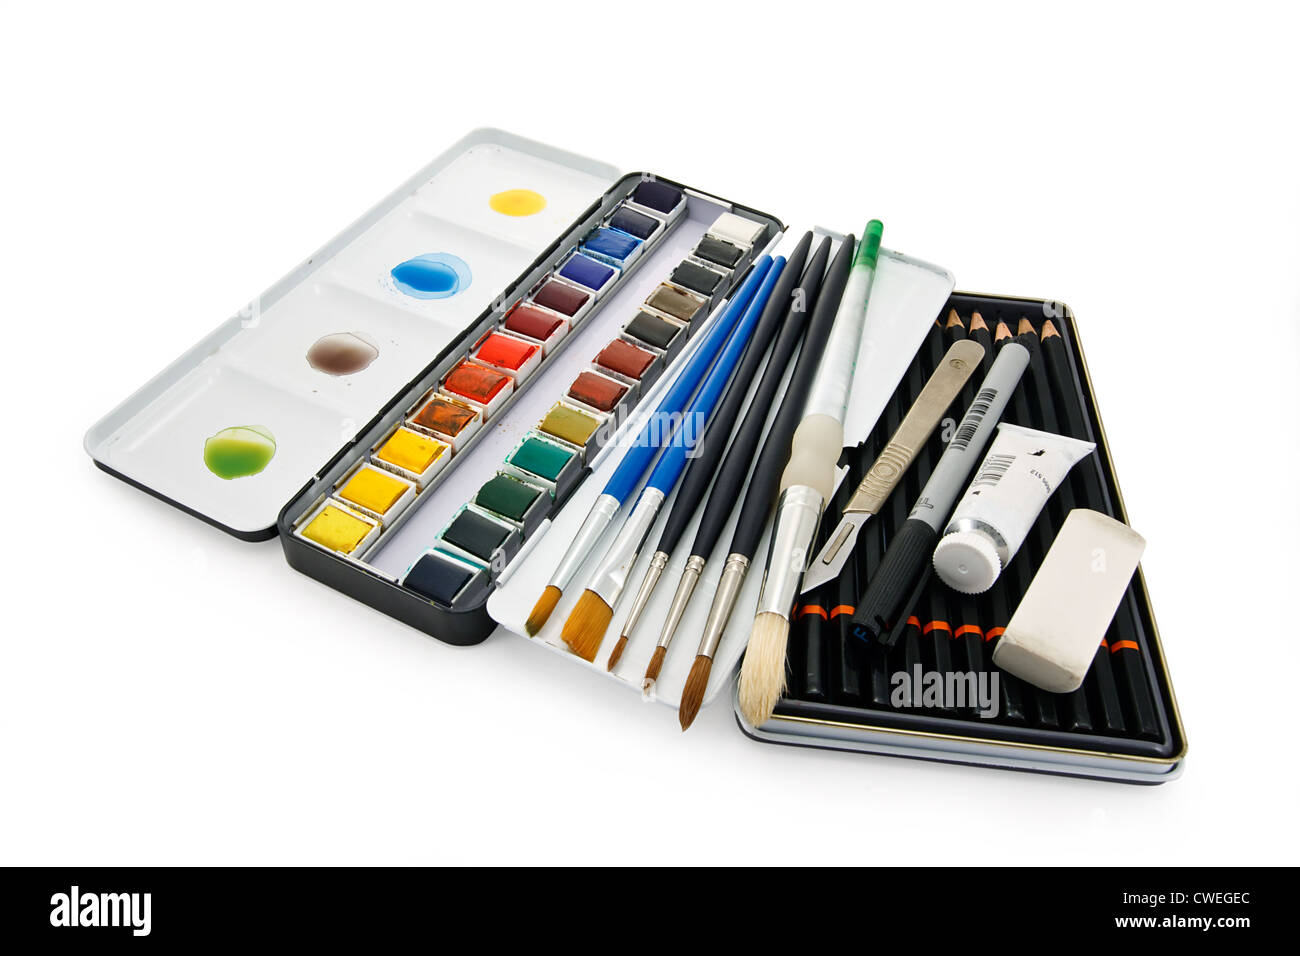 Artists watercolor paint brushes, paints and equipment - Stock Image